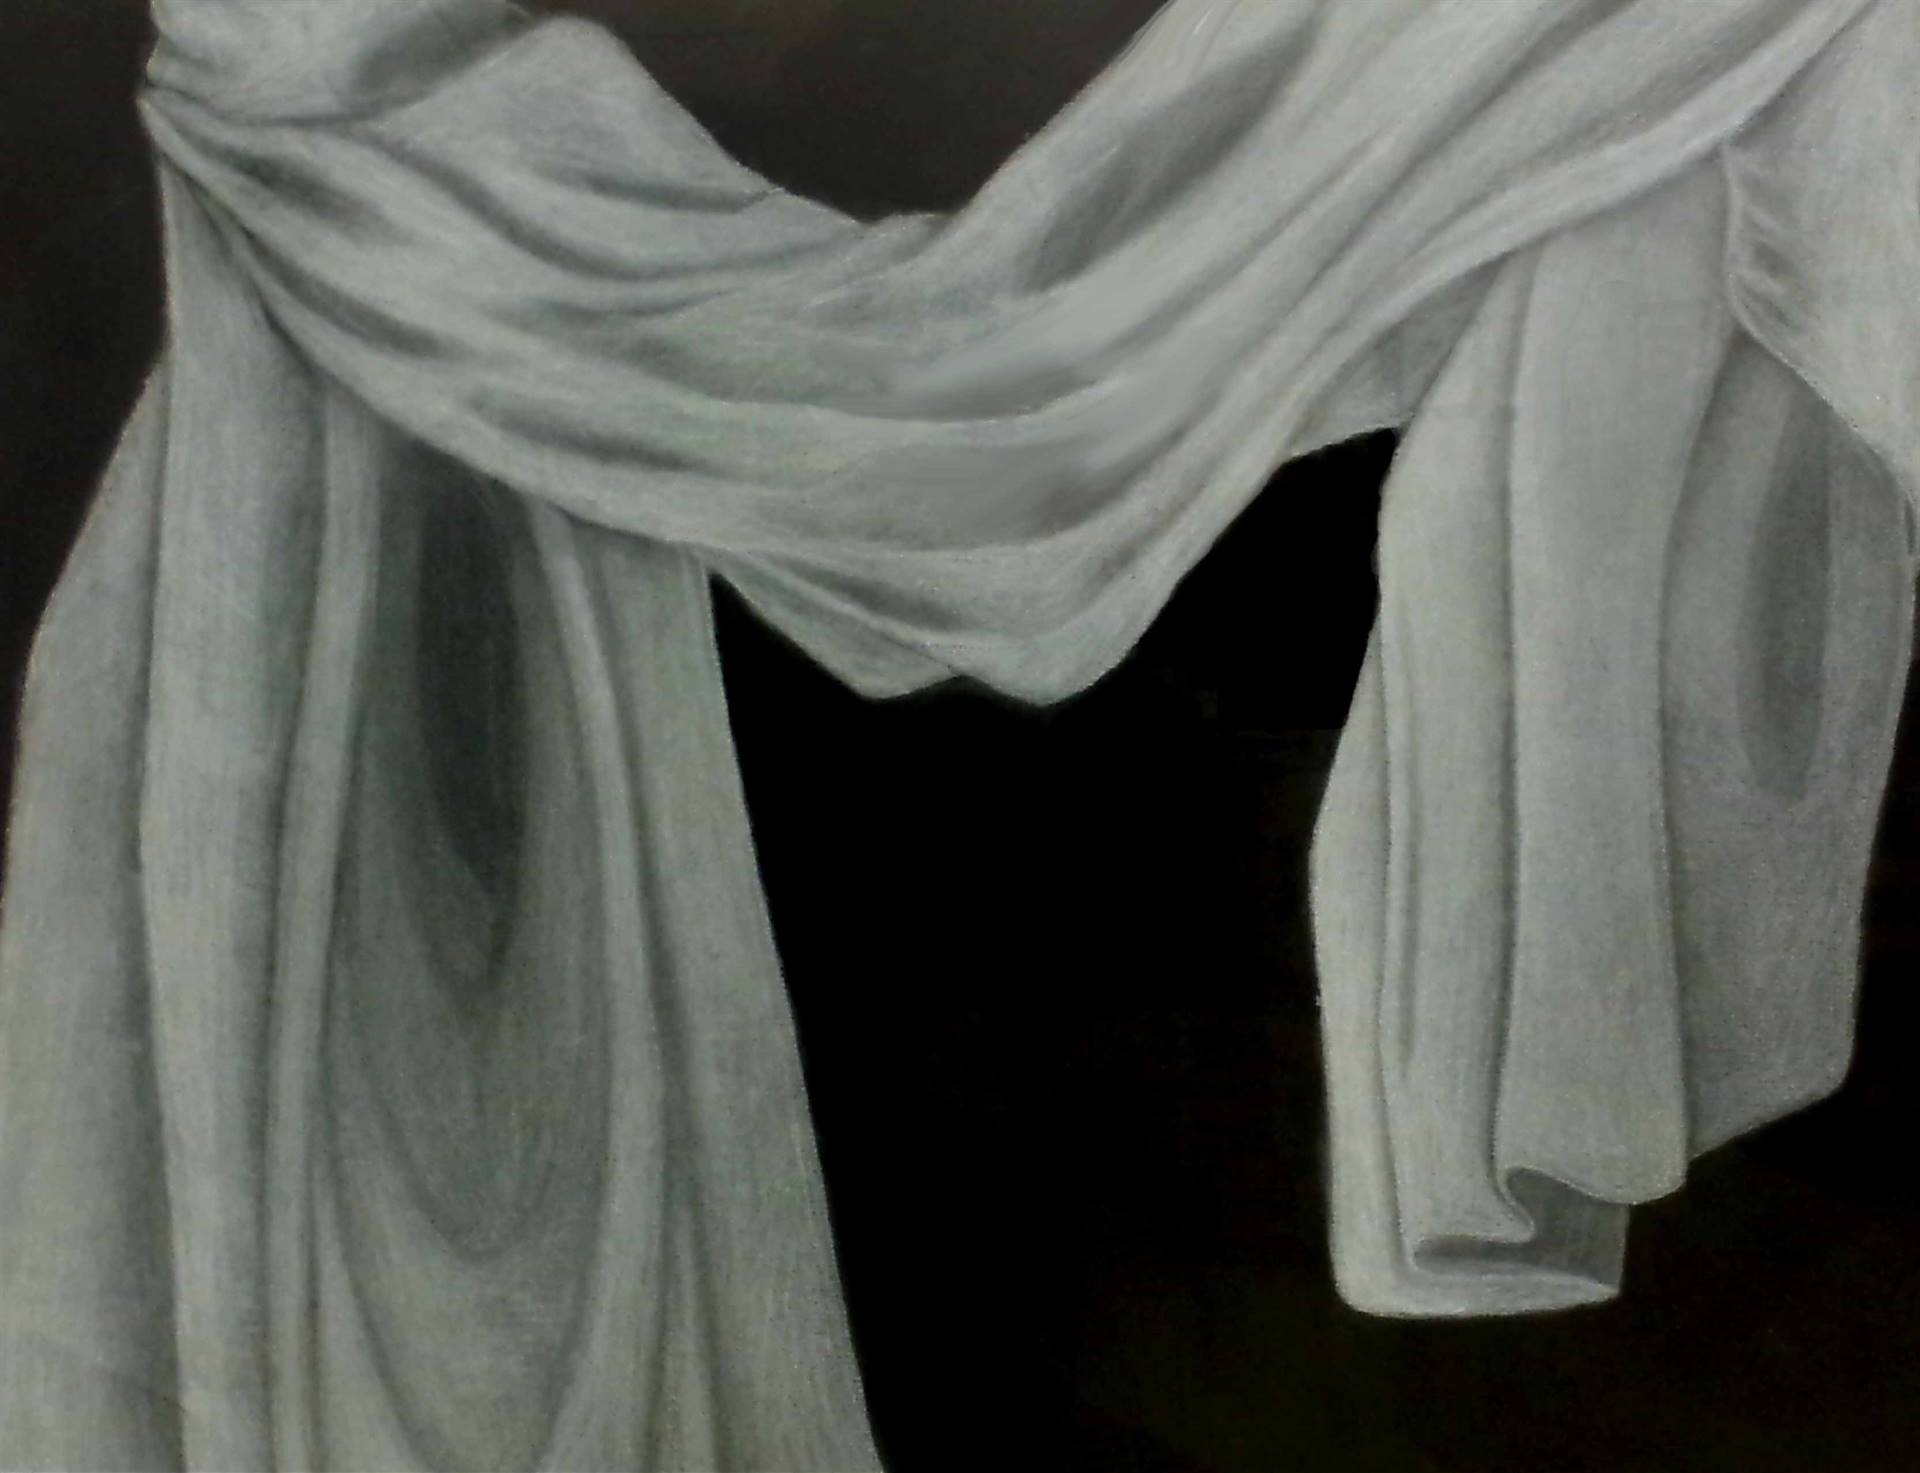 Charcoal drawing of draped white fabric on a black background with a light source